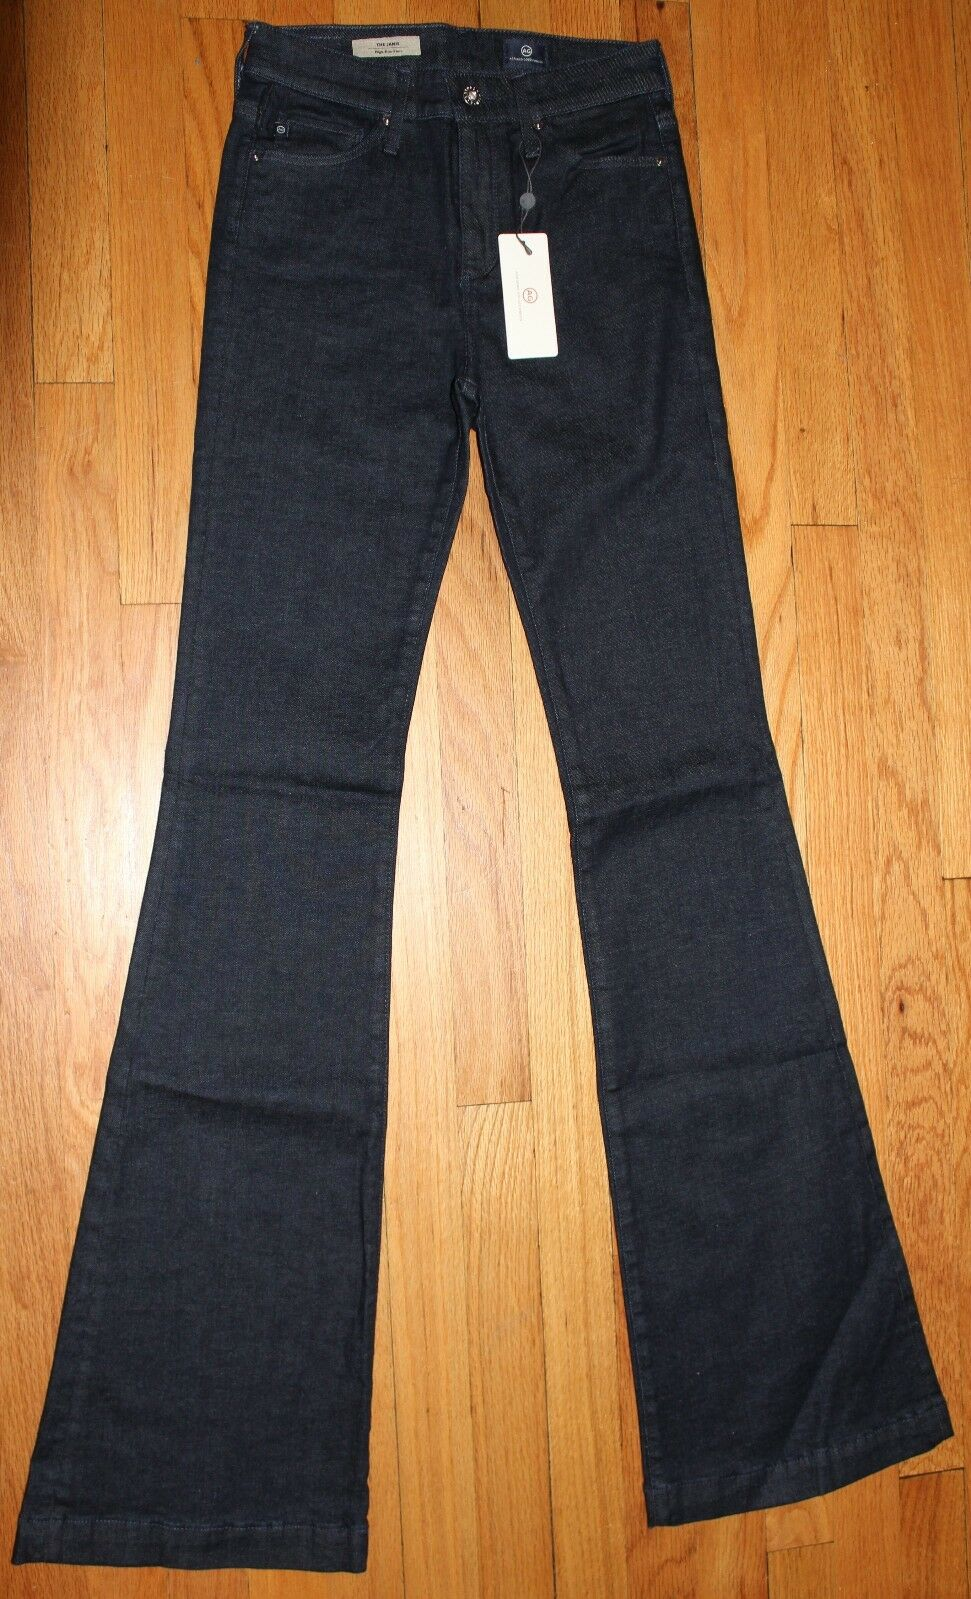 198 AG ADRIANO goldSCHMIED THE JANIS HIGH RISE FLARE JEANS SZ 25